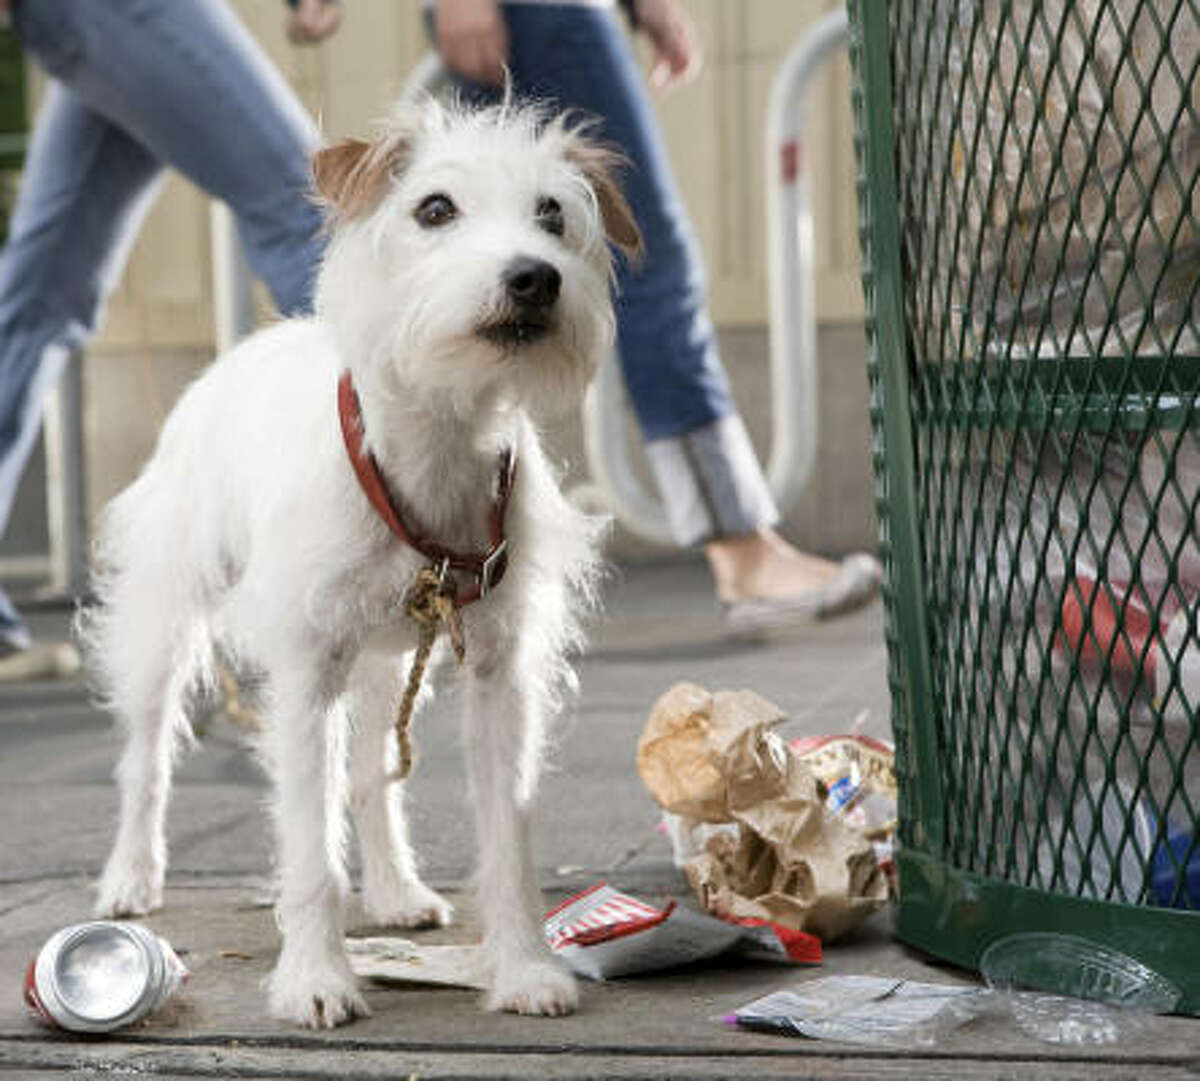 Friday: The star is a shelter dog rescued six months before shooting and named Cosmo. He is executive producer Ivan Reitman's favorite. There were two doubles for Cosmo, also rescues.